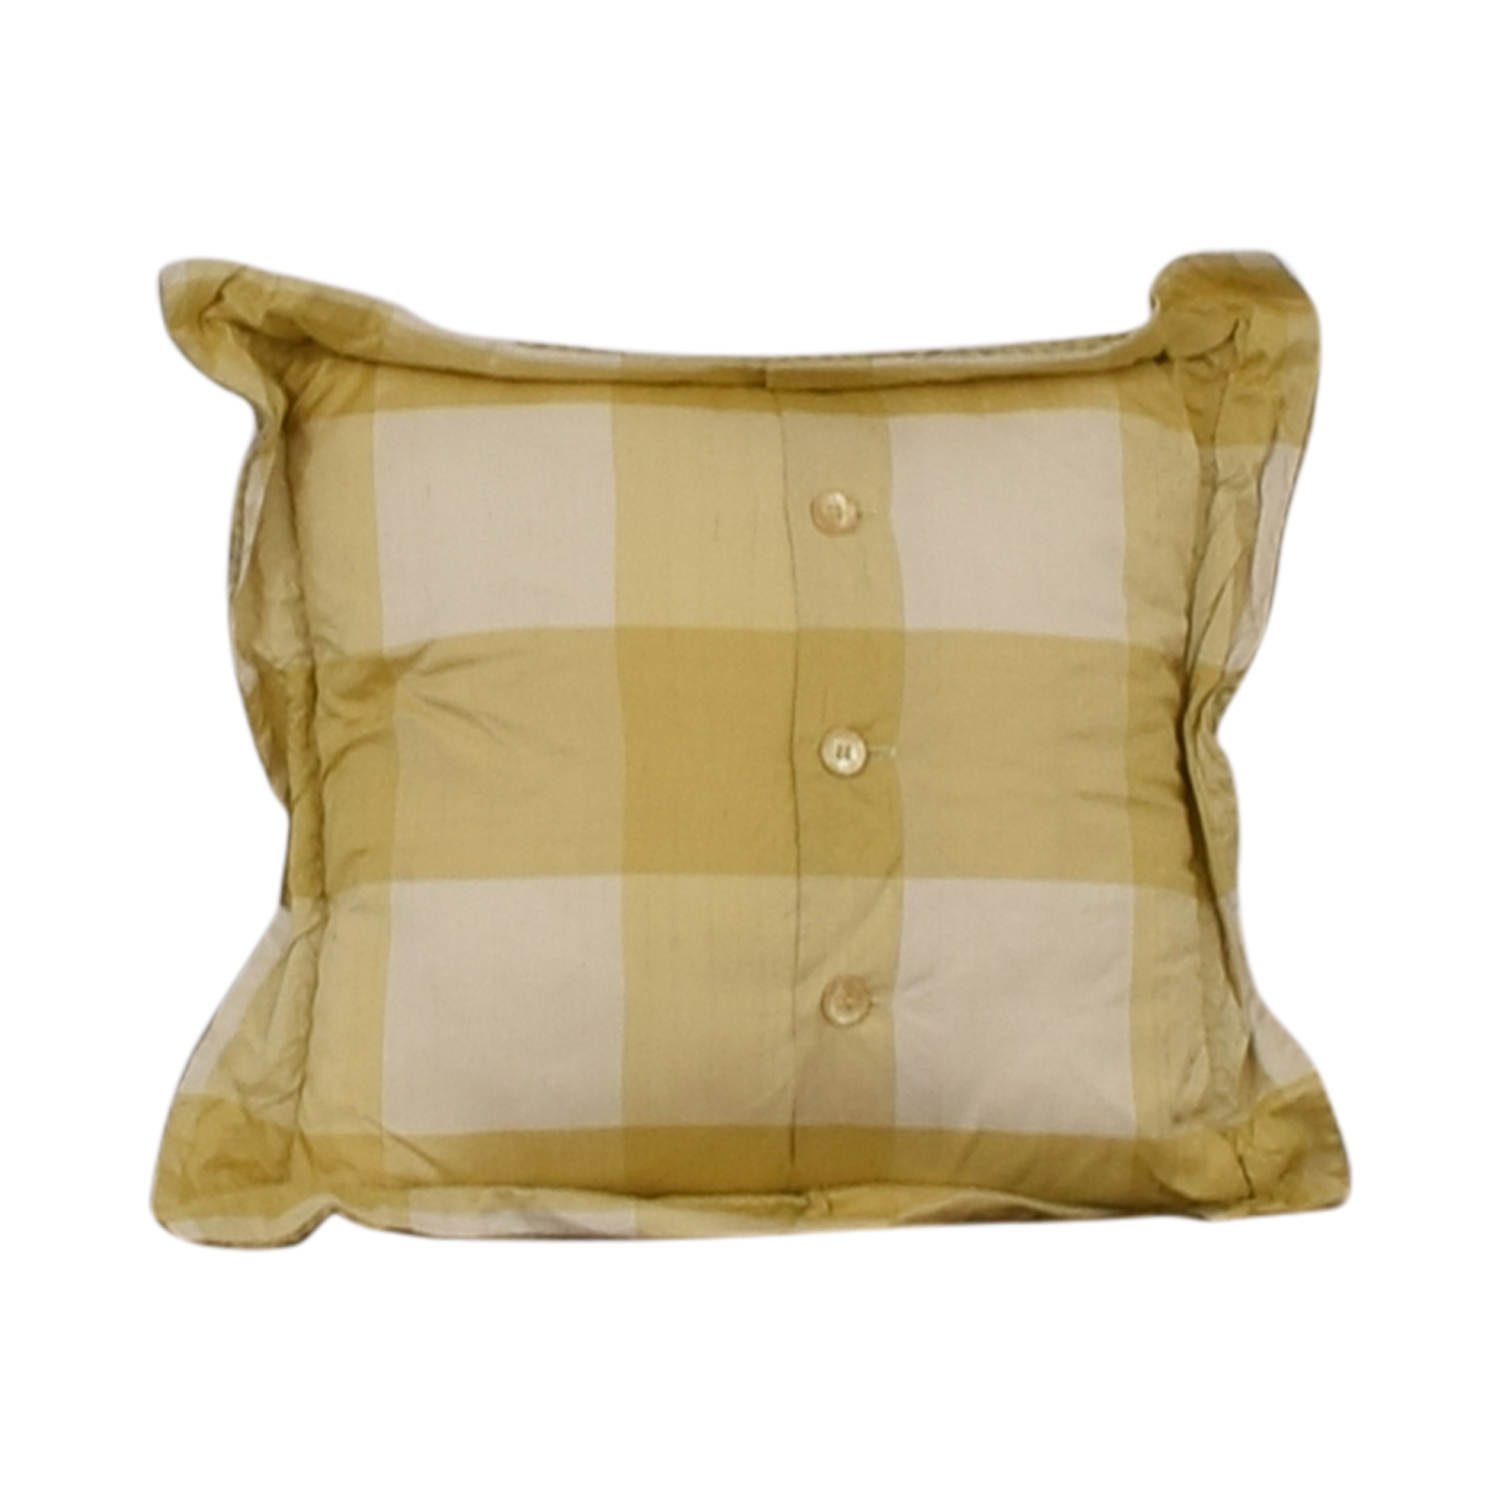 Custom Gold and White Decorative Pillow Decorative Accents